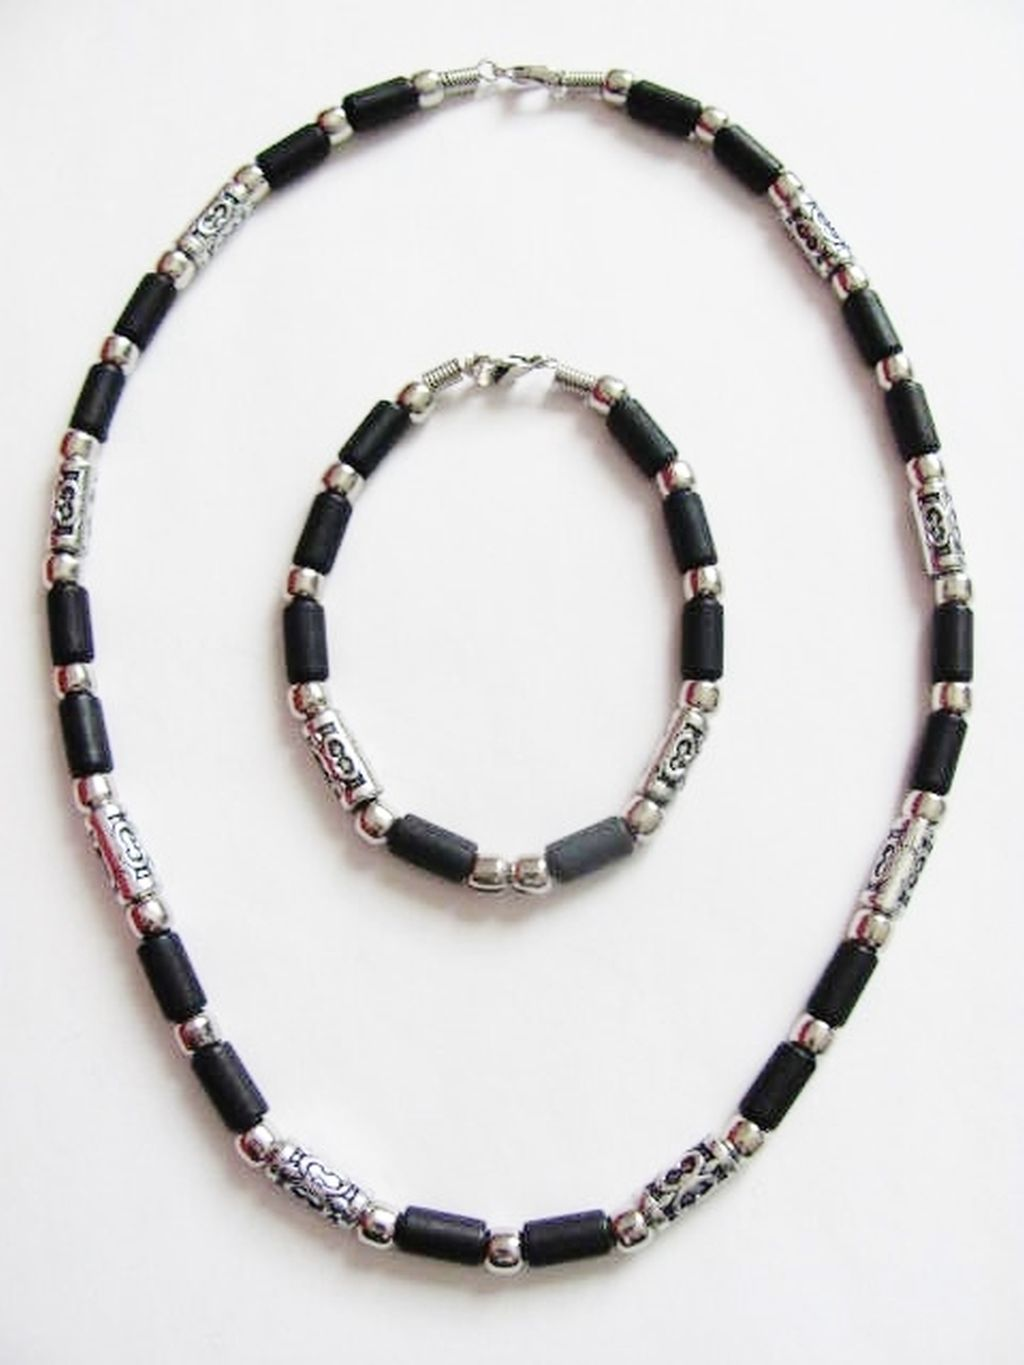 Dusk-till-Dawn Cancun Beach Survivor Beaded Necklace Bracelet, Men's Surfer Choker Black Set